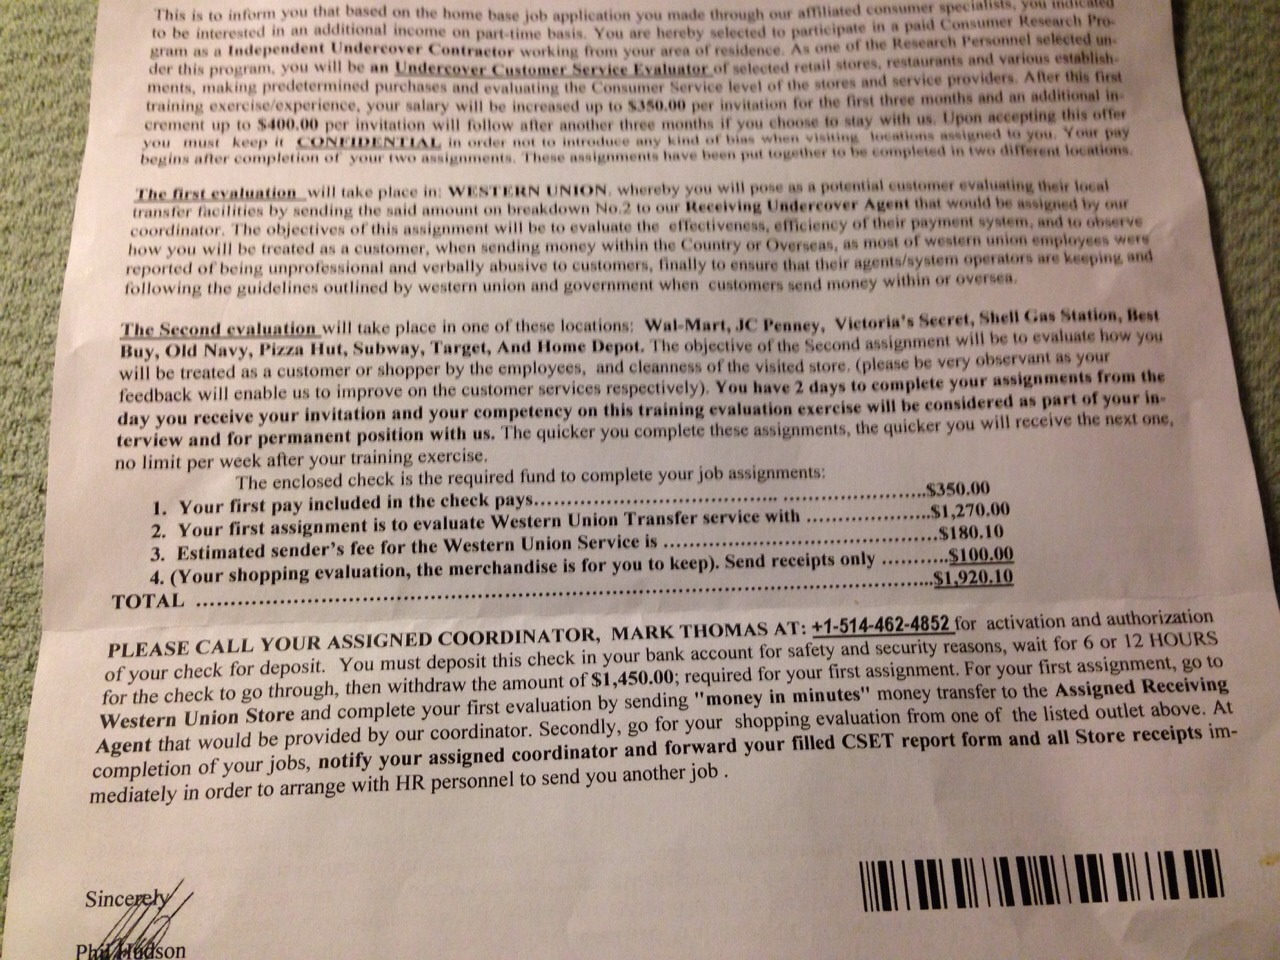 It's an out of state which usually takes 3 business days to clear.  This letter tells you to 1st call this individual to activate and authorize the check and then states that you have 2 days to wire the funds to them which means the check won't be cleared yet.  You will be stuck owing your bank.